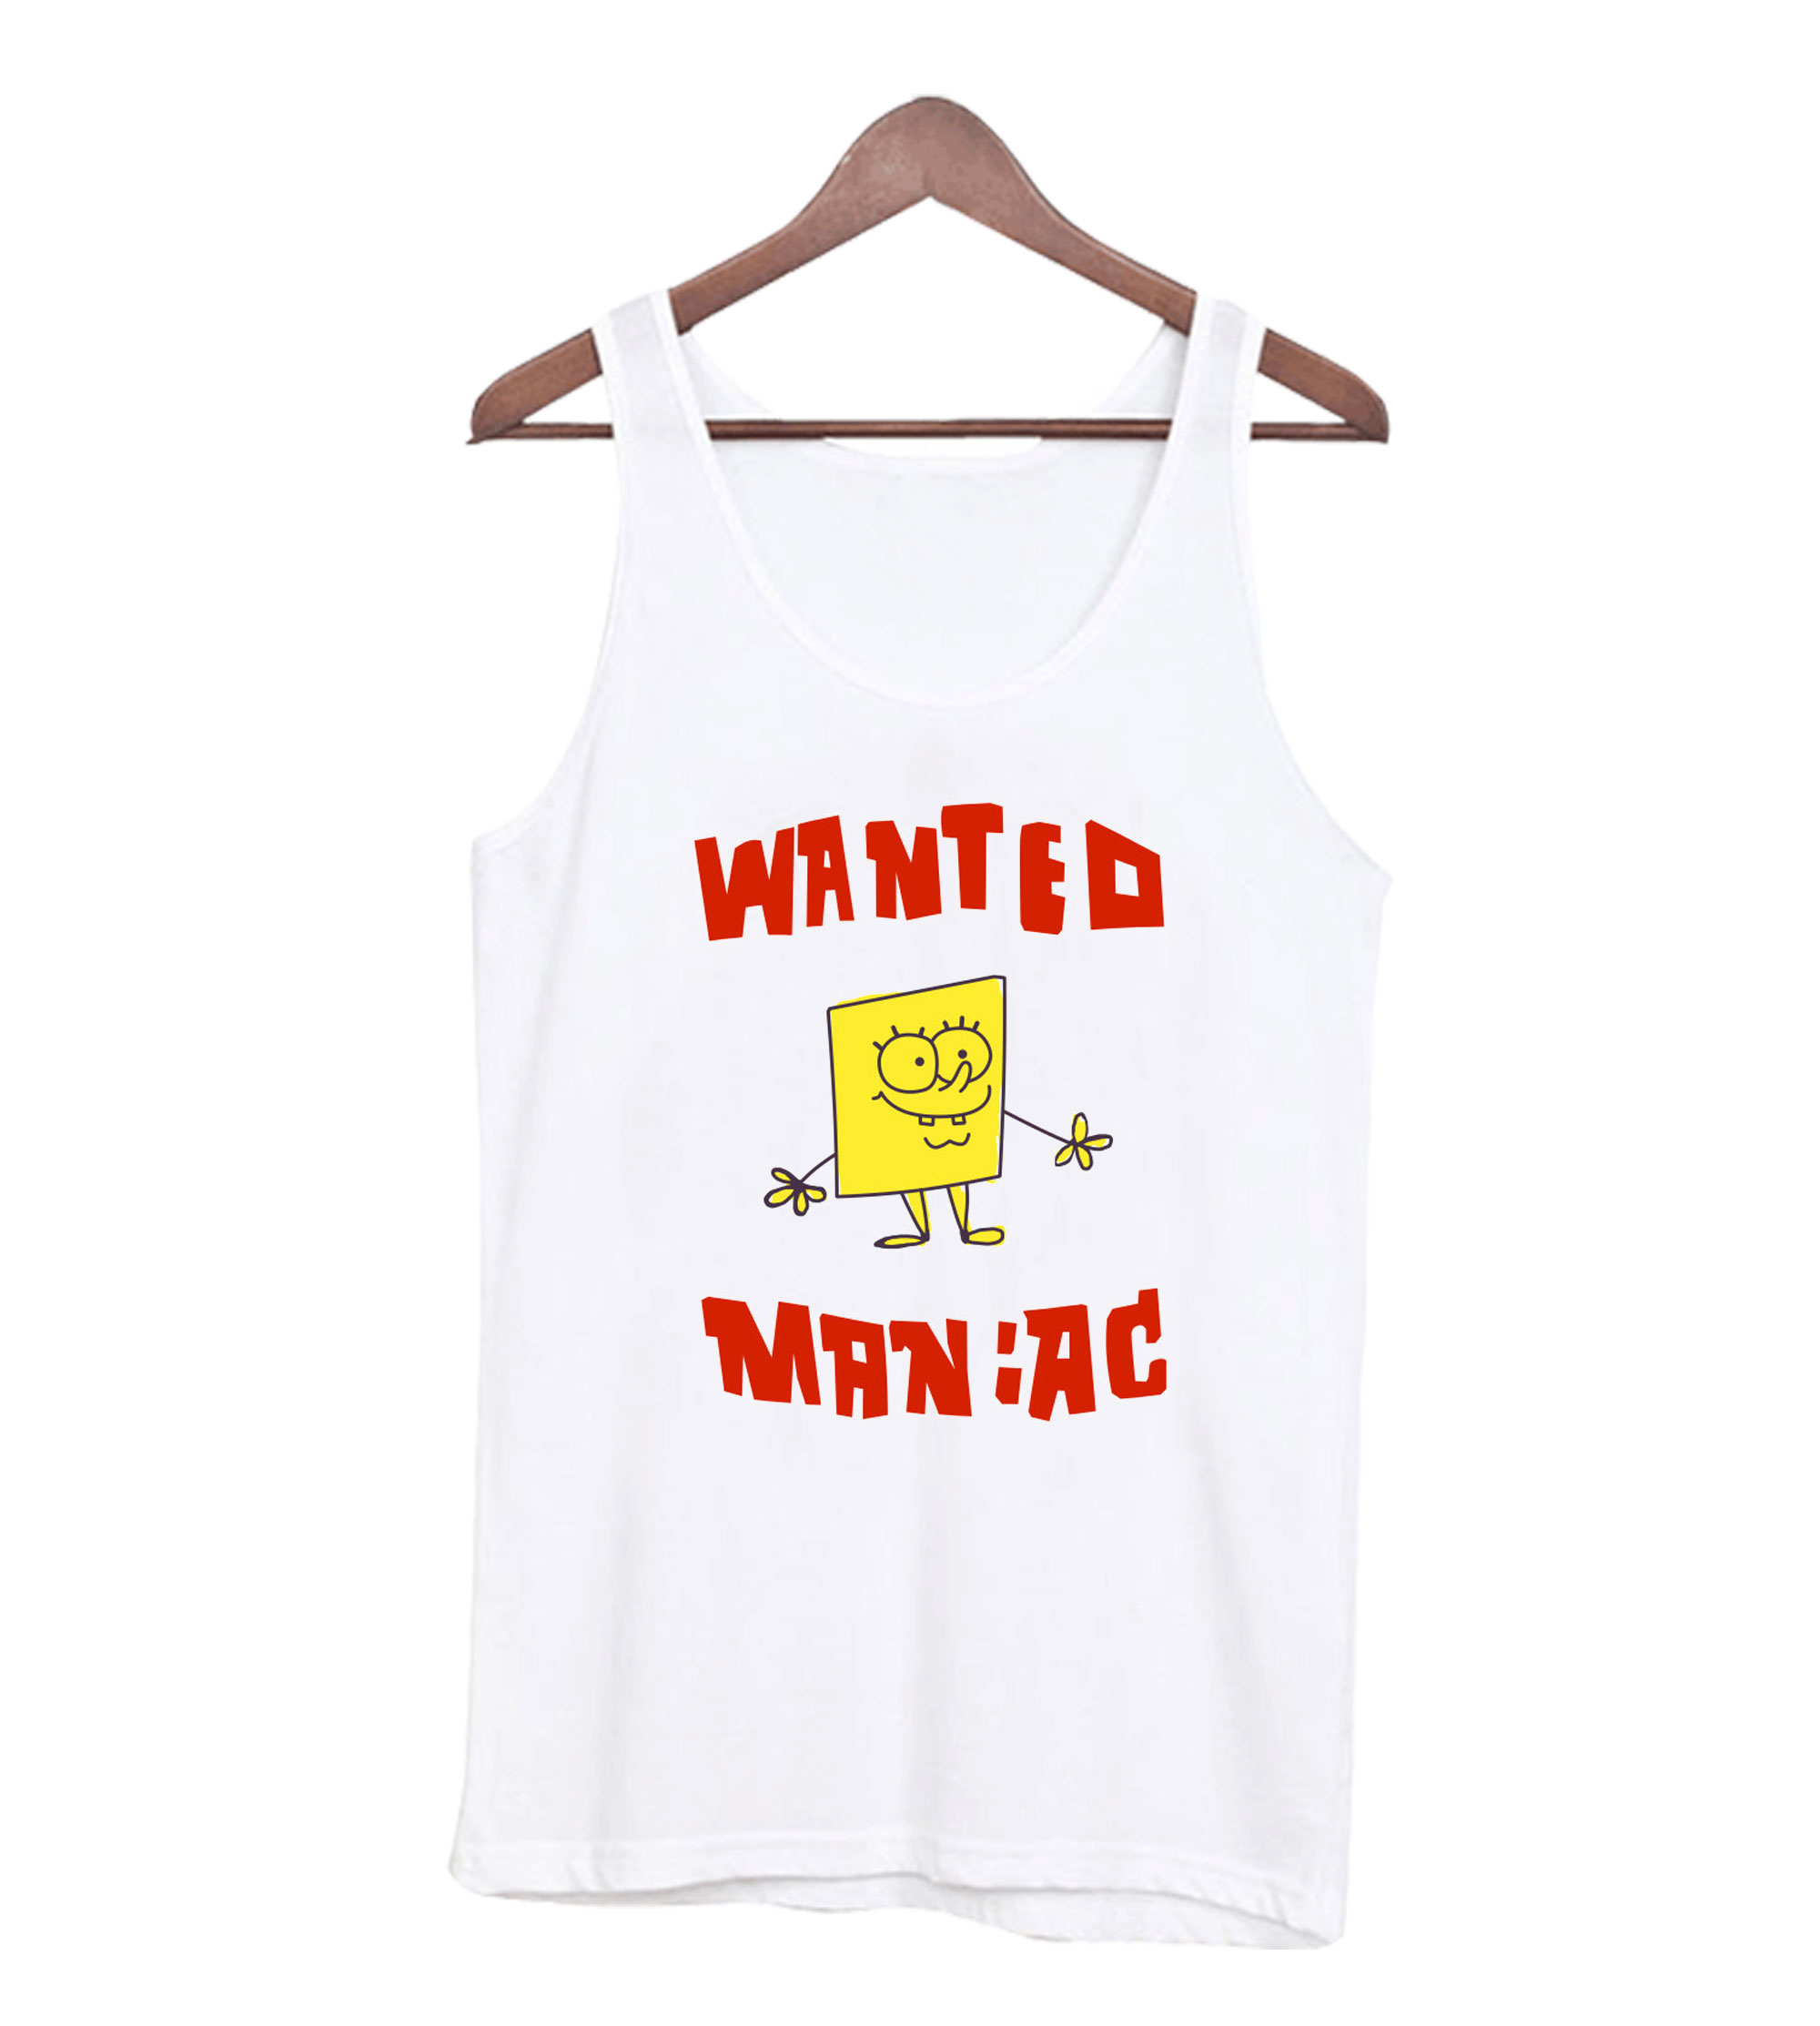 SpongeBob SquarePants Wanted Maniac Tank Top